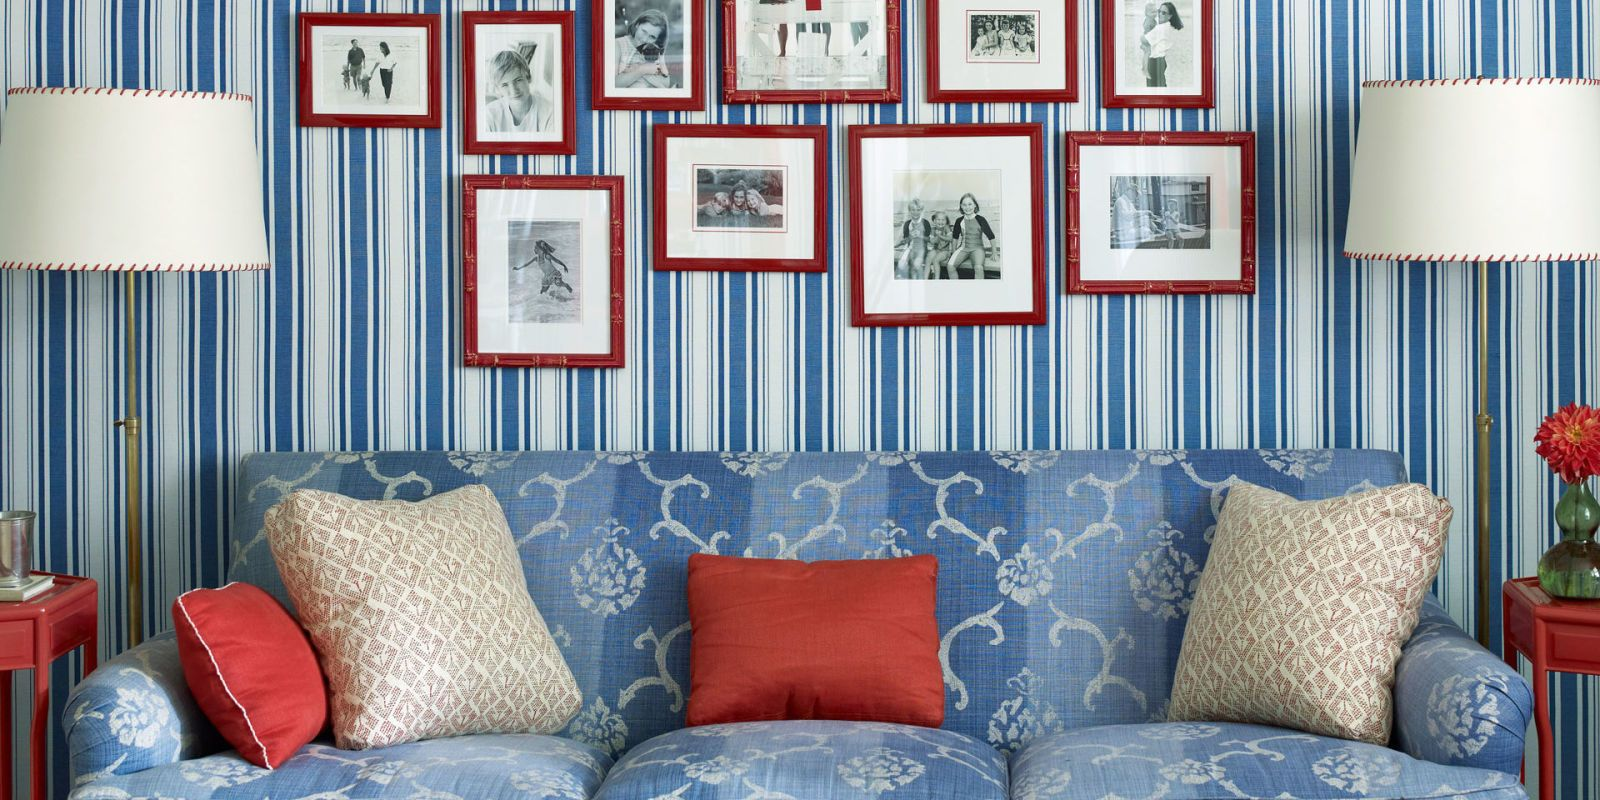 blue and white striped office & Patriotic Decor for 4th of July - Red White and Blue Decorating Ideas